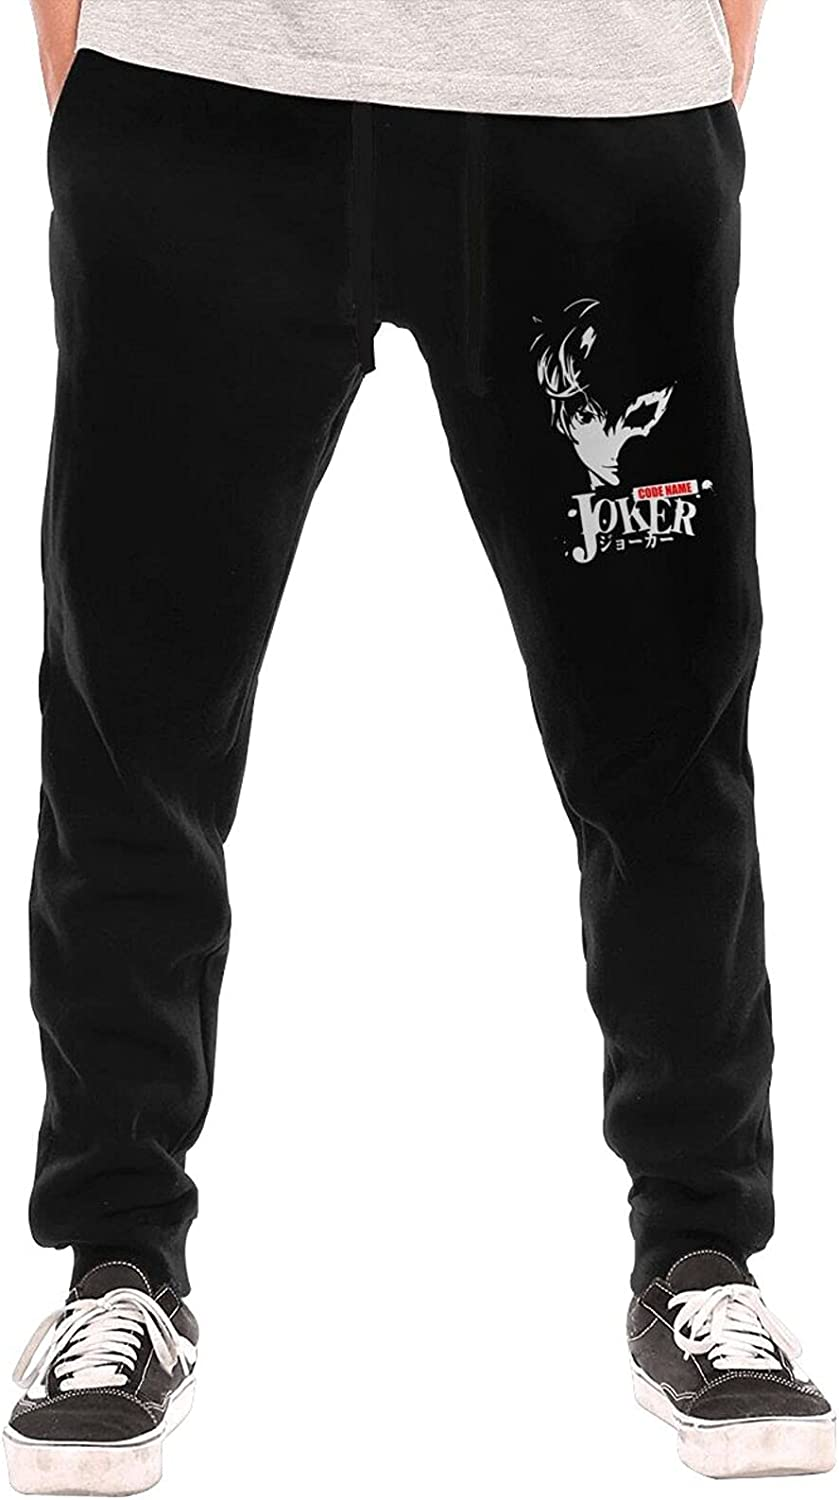 Anime Persona 5 The Joker Long Pants Mens Unique Sports Jogger Trousers Slacks Have with Pockets Bottoms